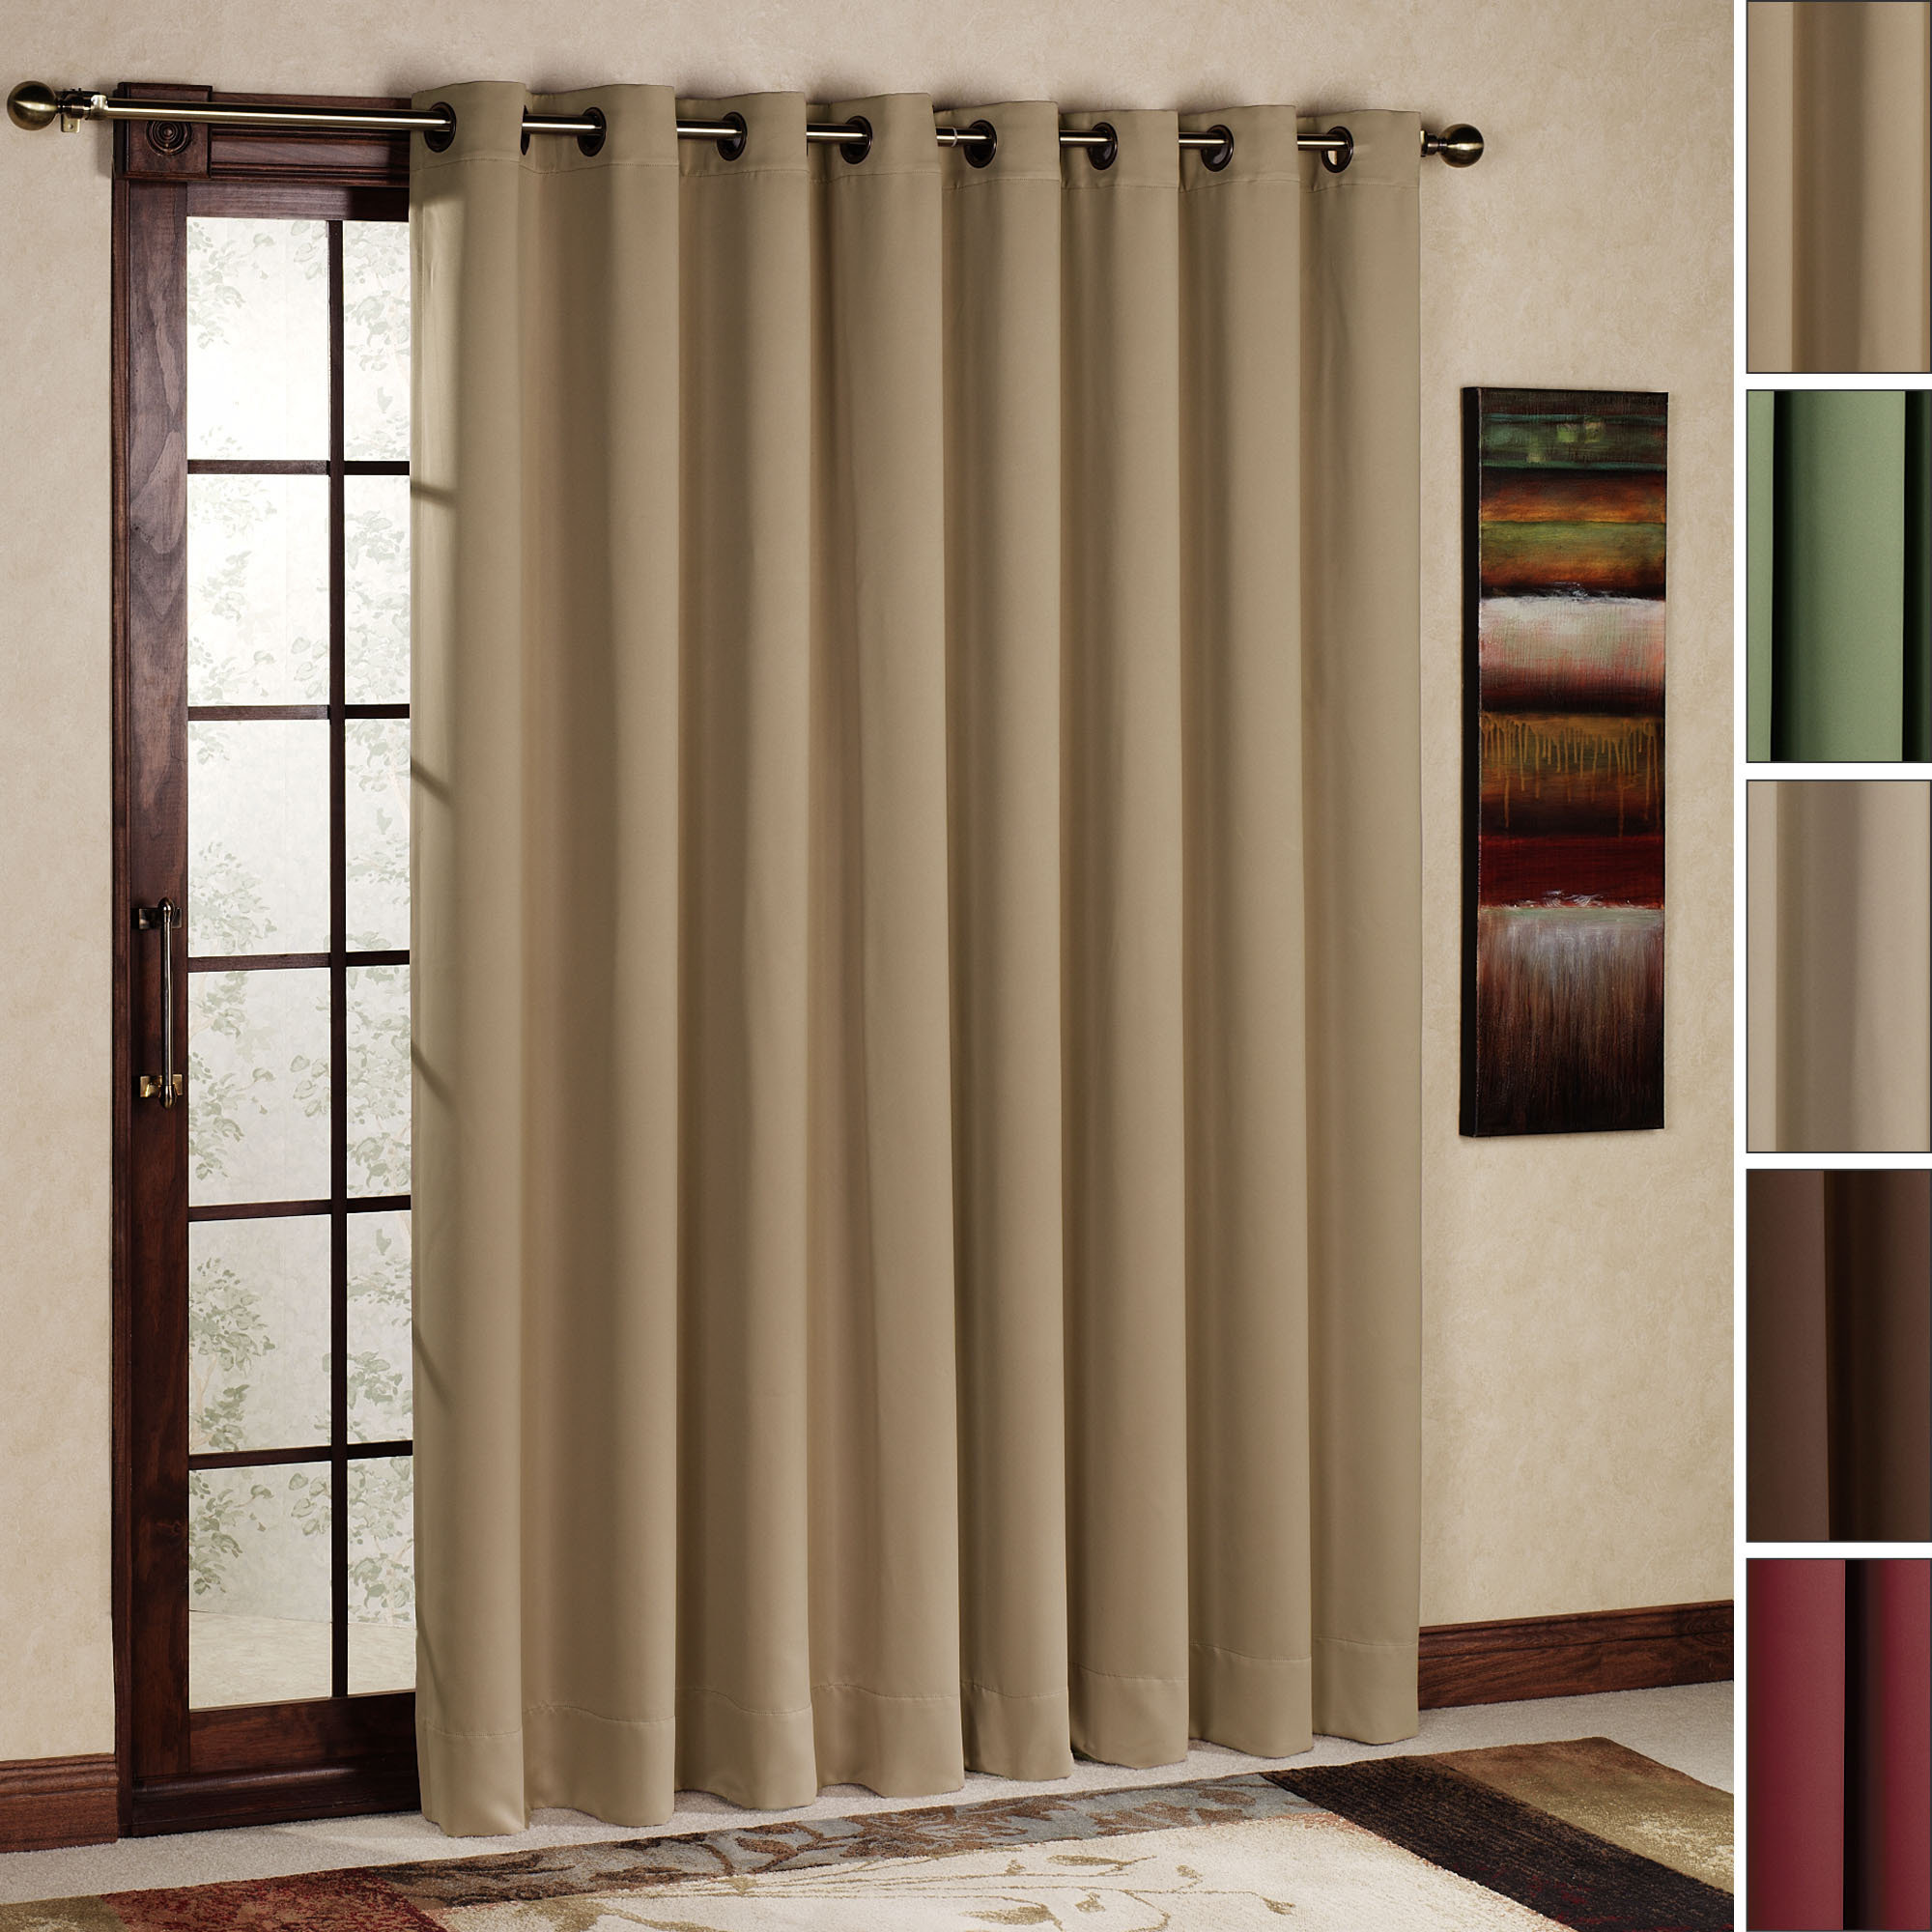 Curtain For Balcony: Patio Door Curtain Ideas